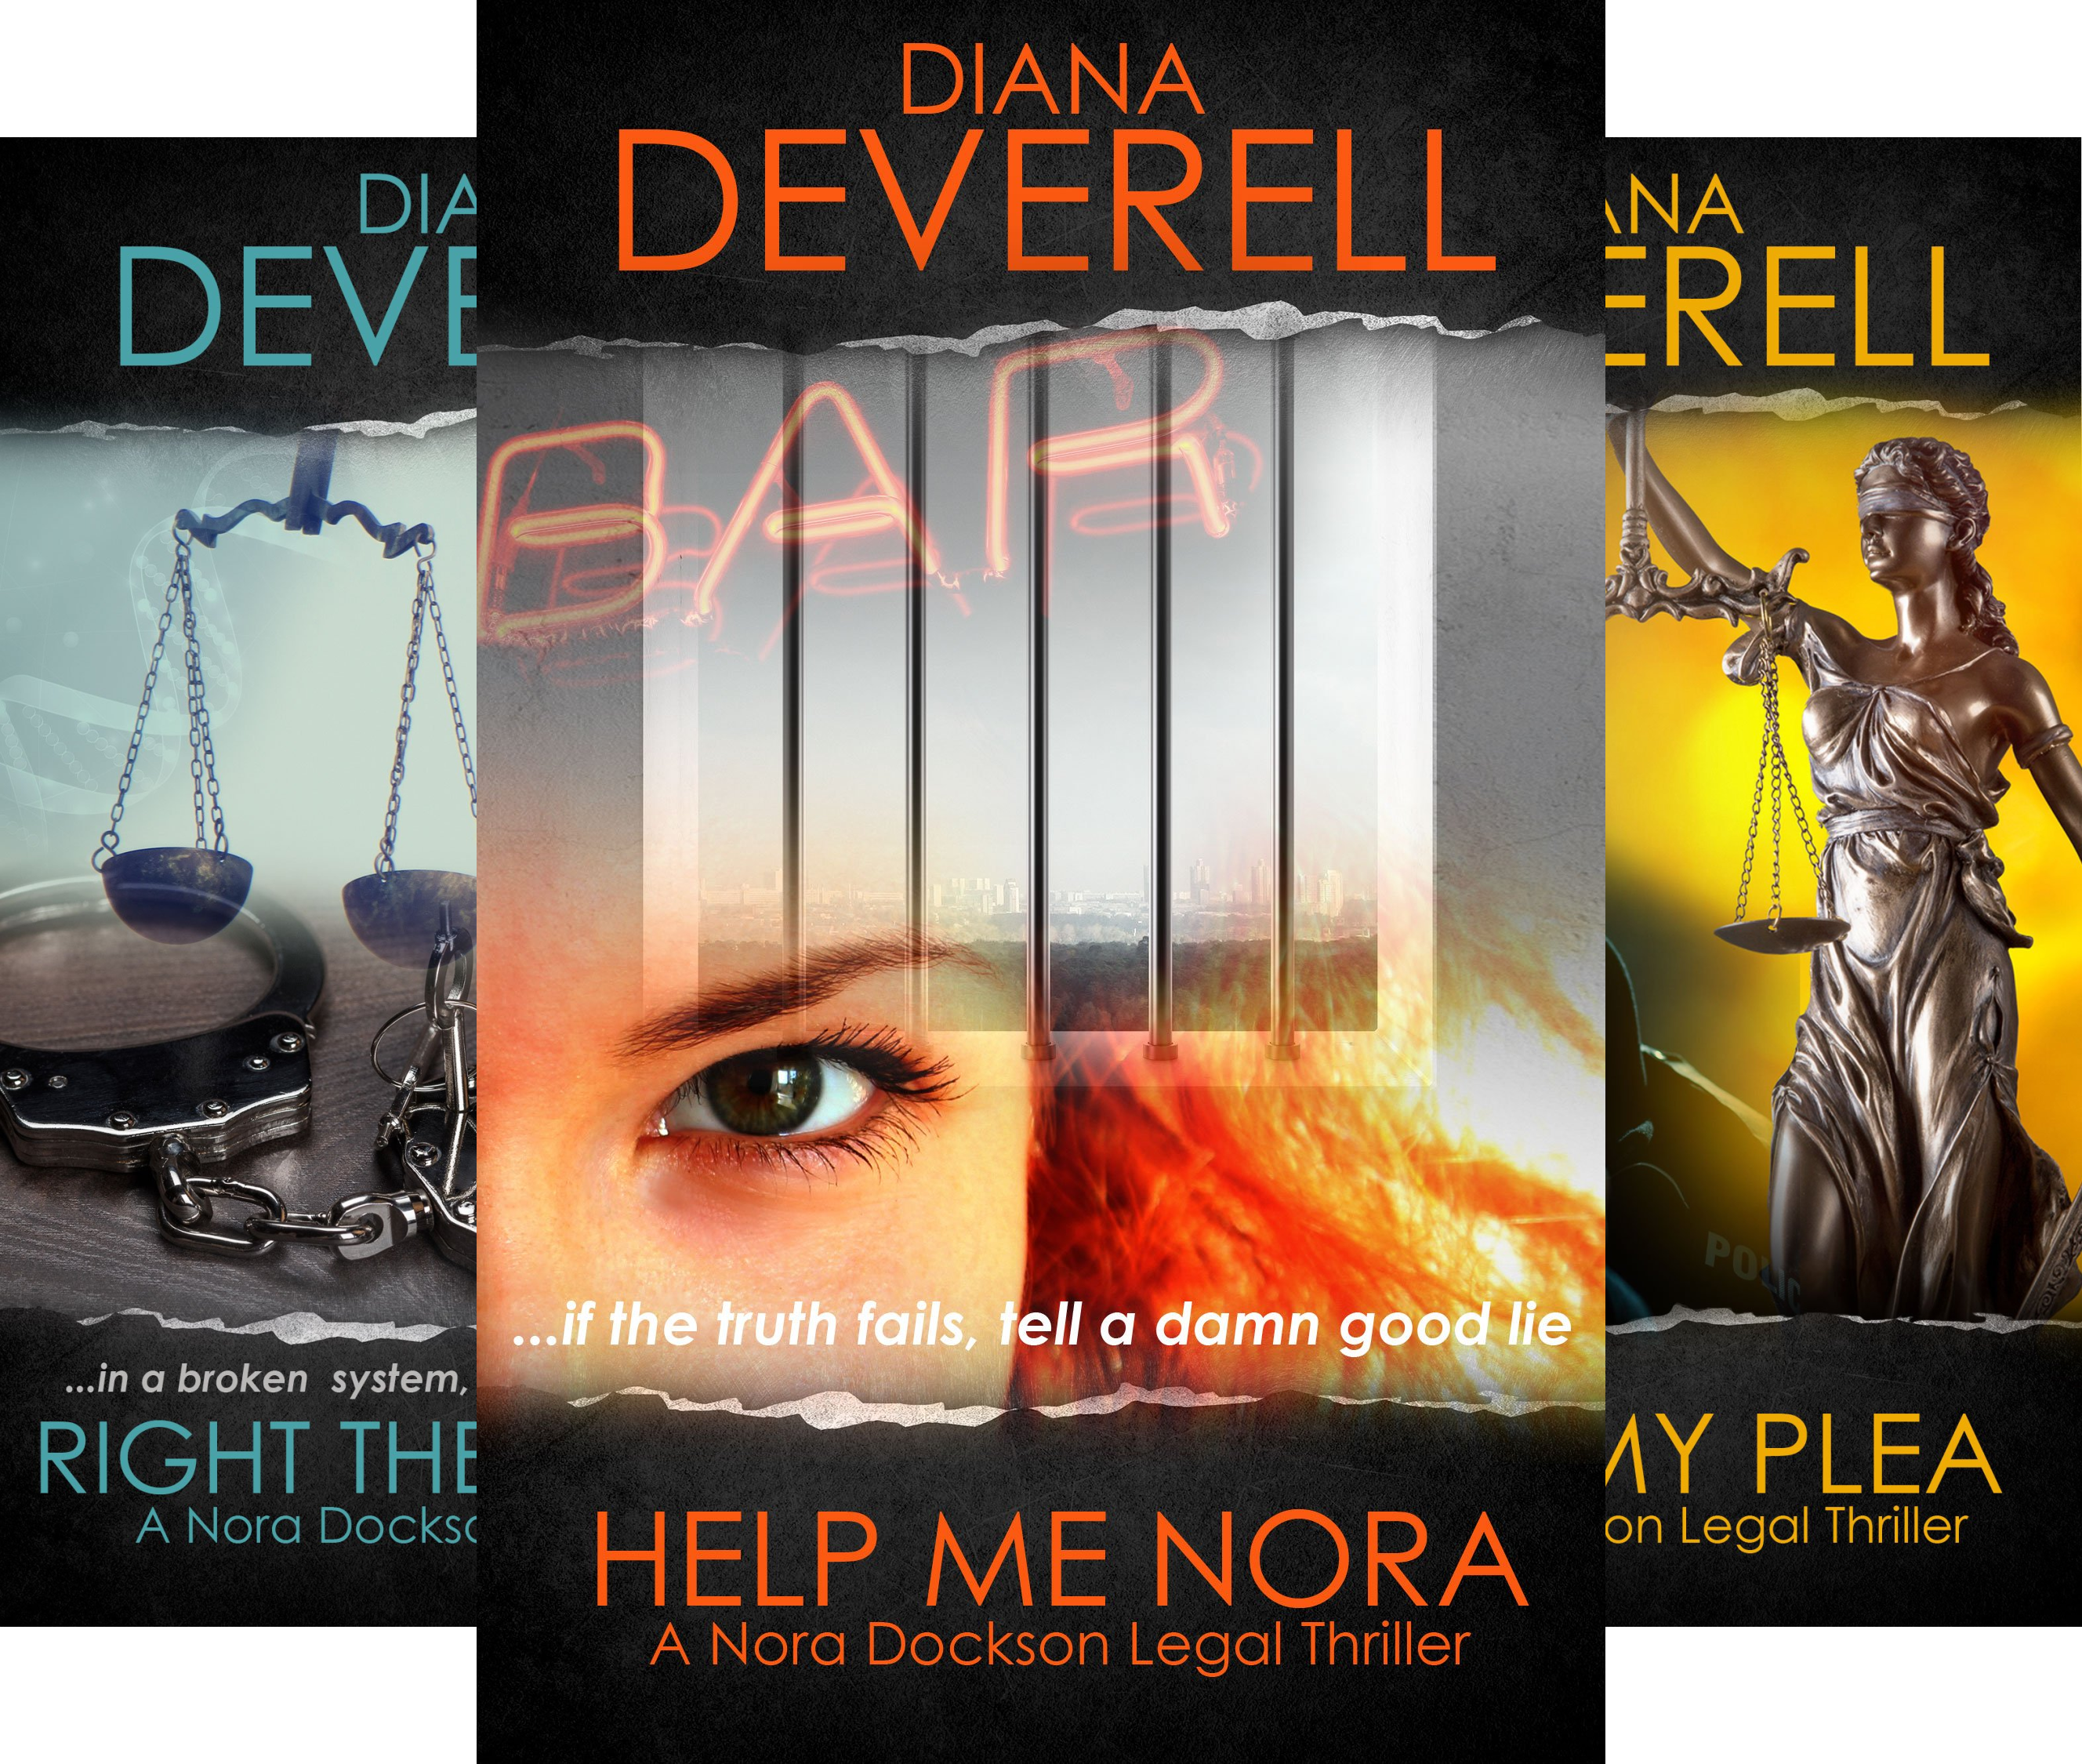 Nora Dockson Legal Thrillers (4 Book Series)